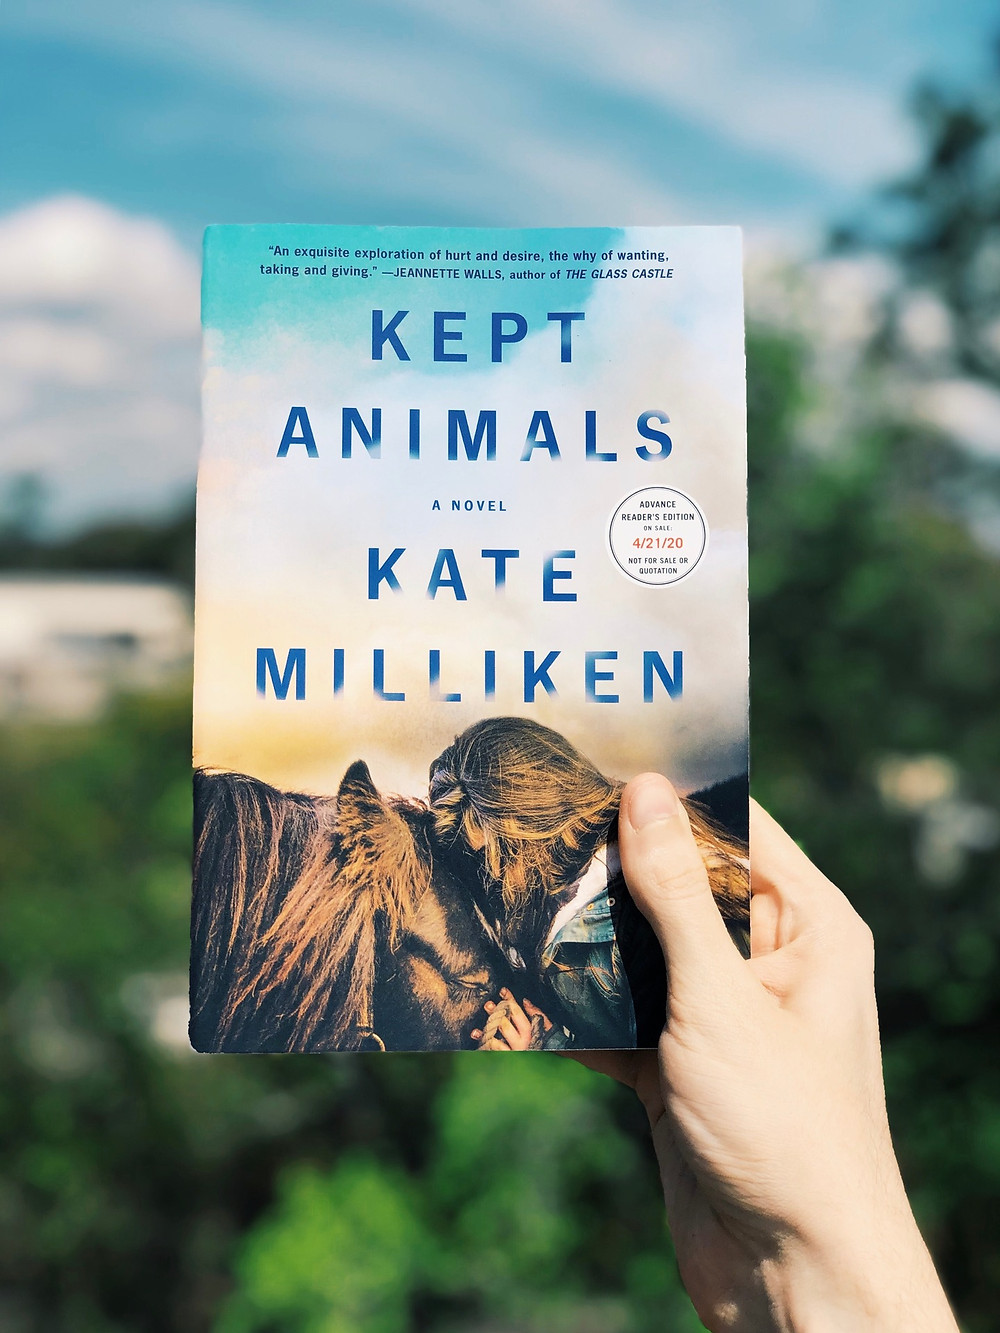 A hand holds up the book Kept Animals to a blue, sunny sky